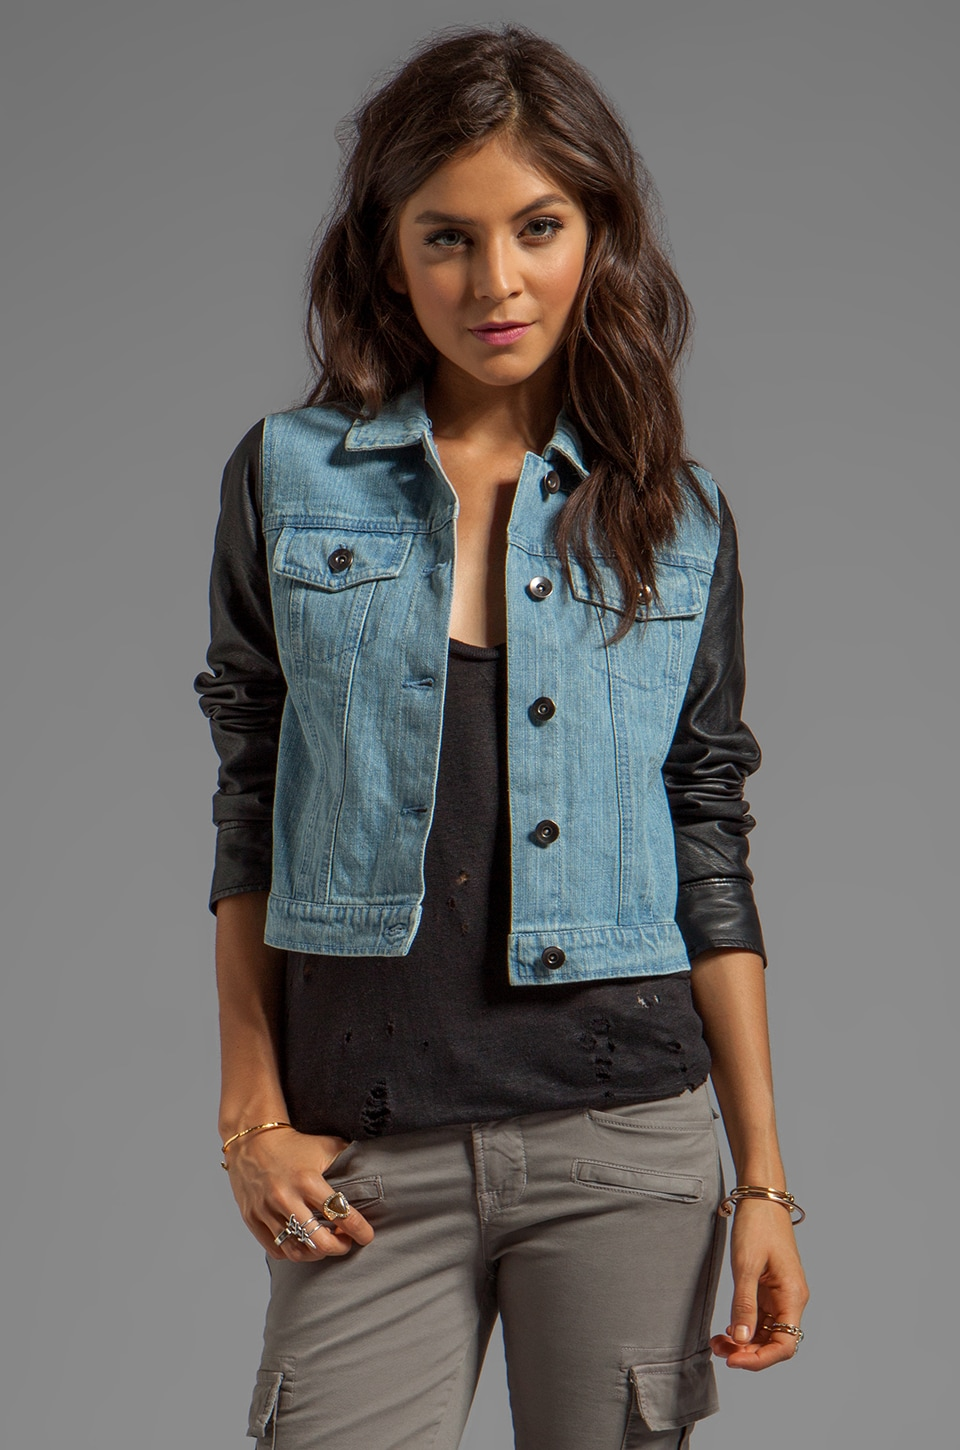 BB Dakota Kiran Dry Crinkle Jacket in Black/Denim